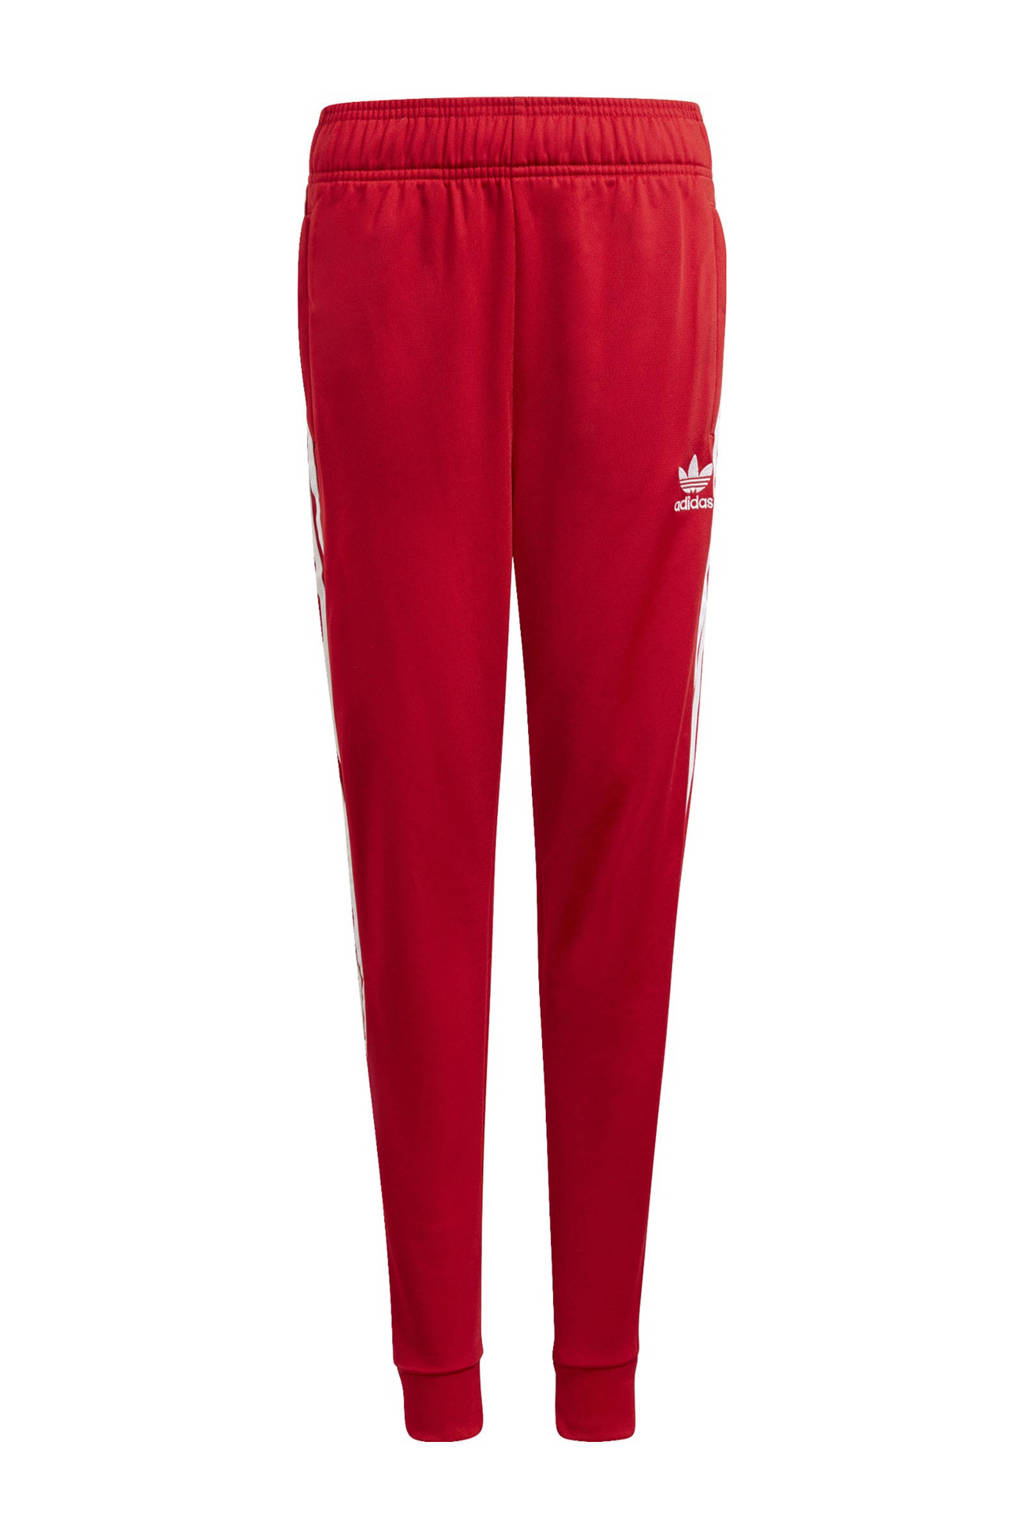 adidas Originals Superstar Adicolor joggingbroek rood/wit, Rood/wit